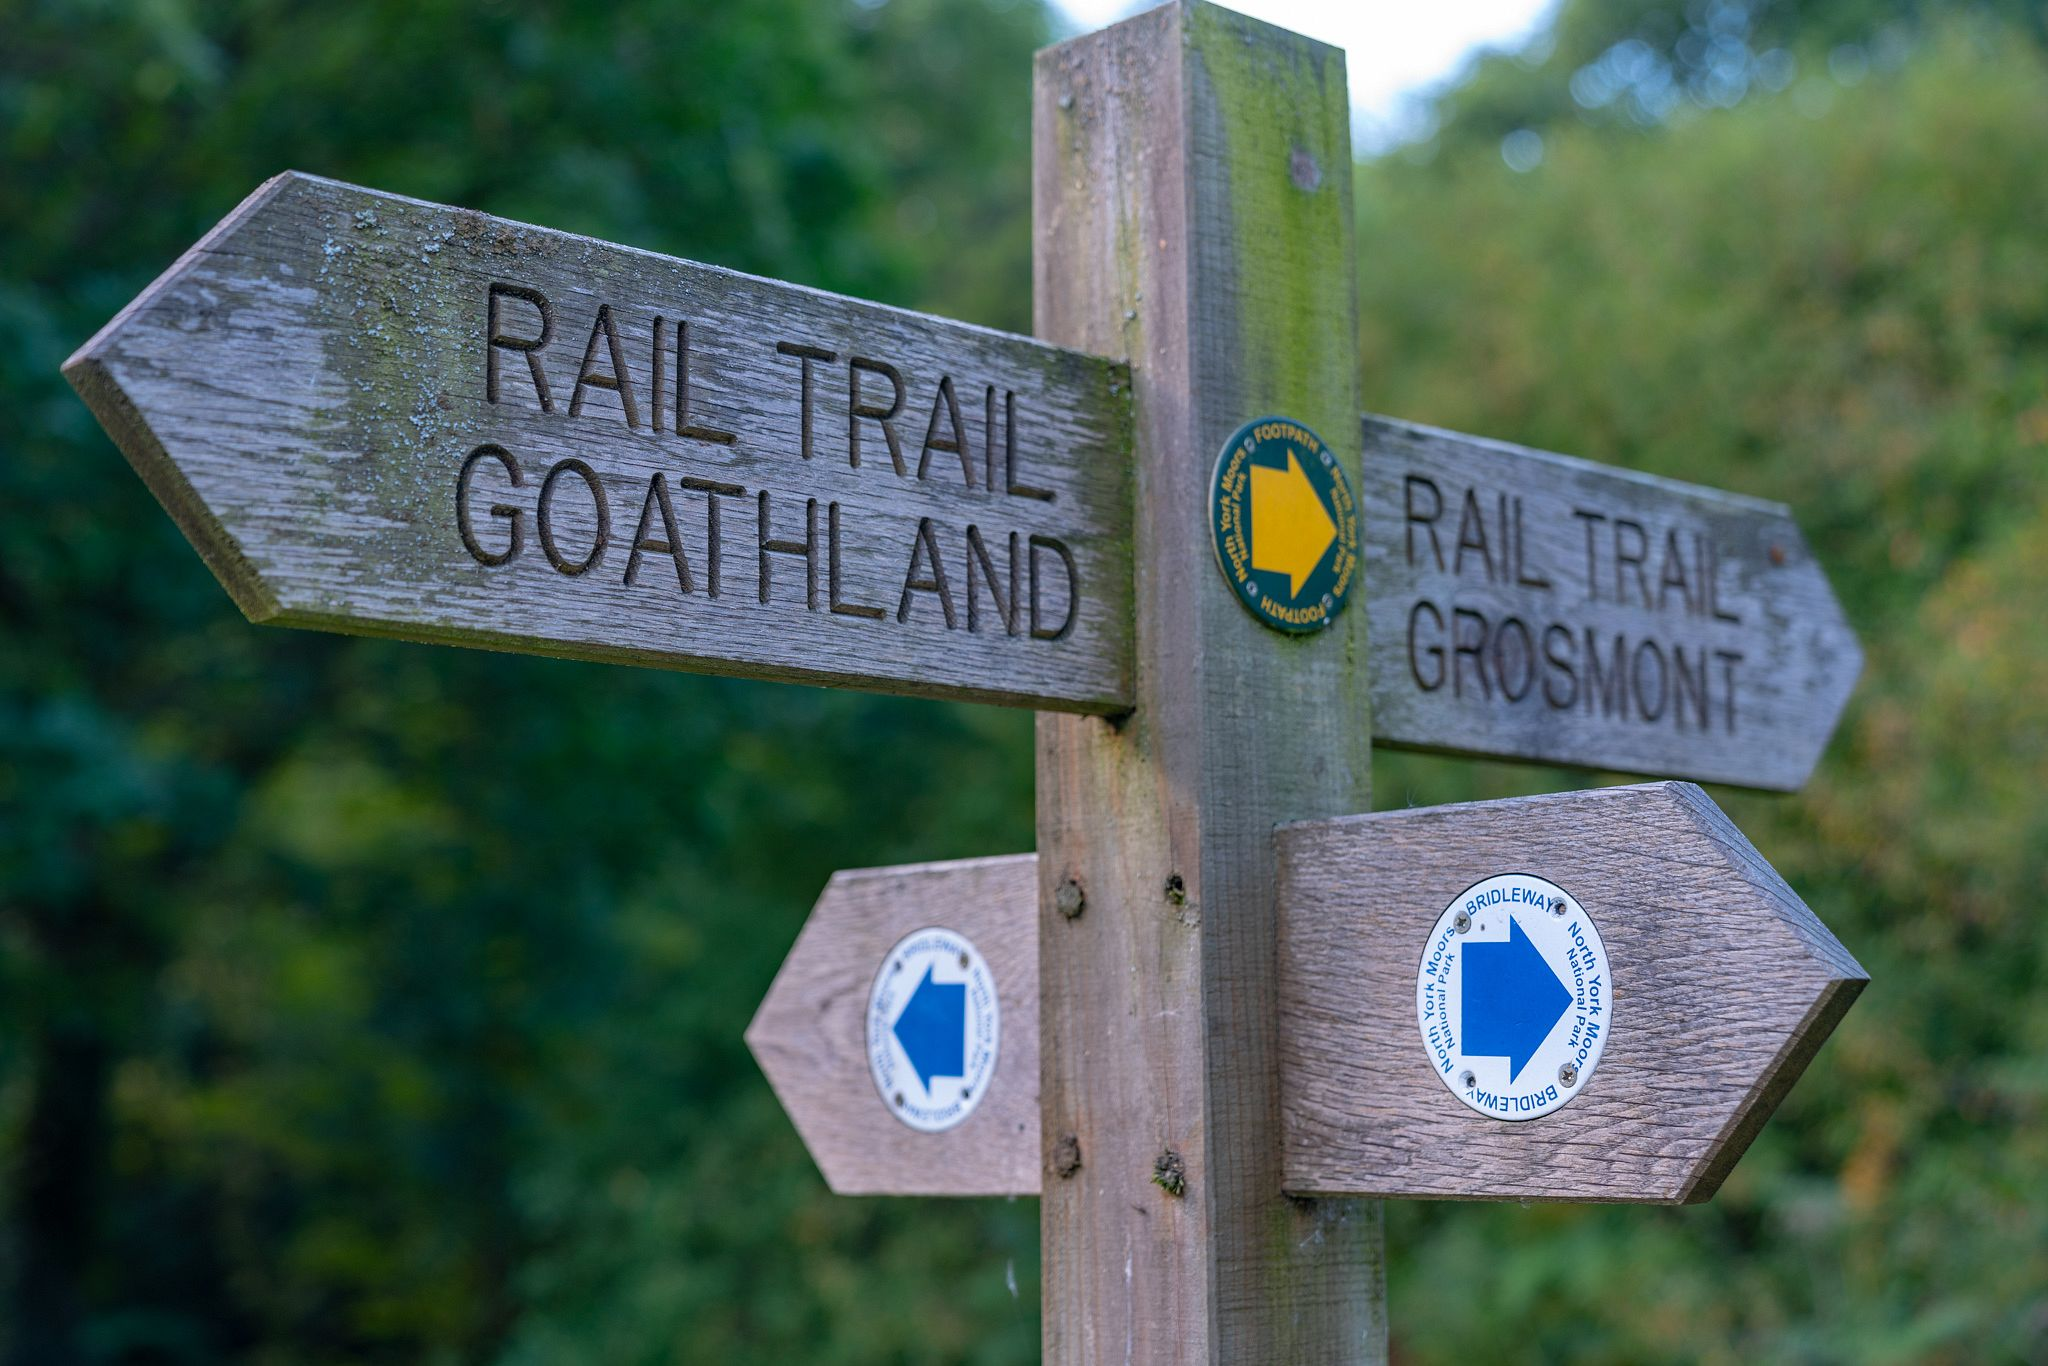 Rail Trail Goathland to Grosmont